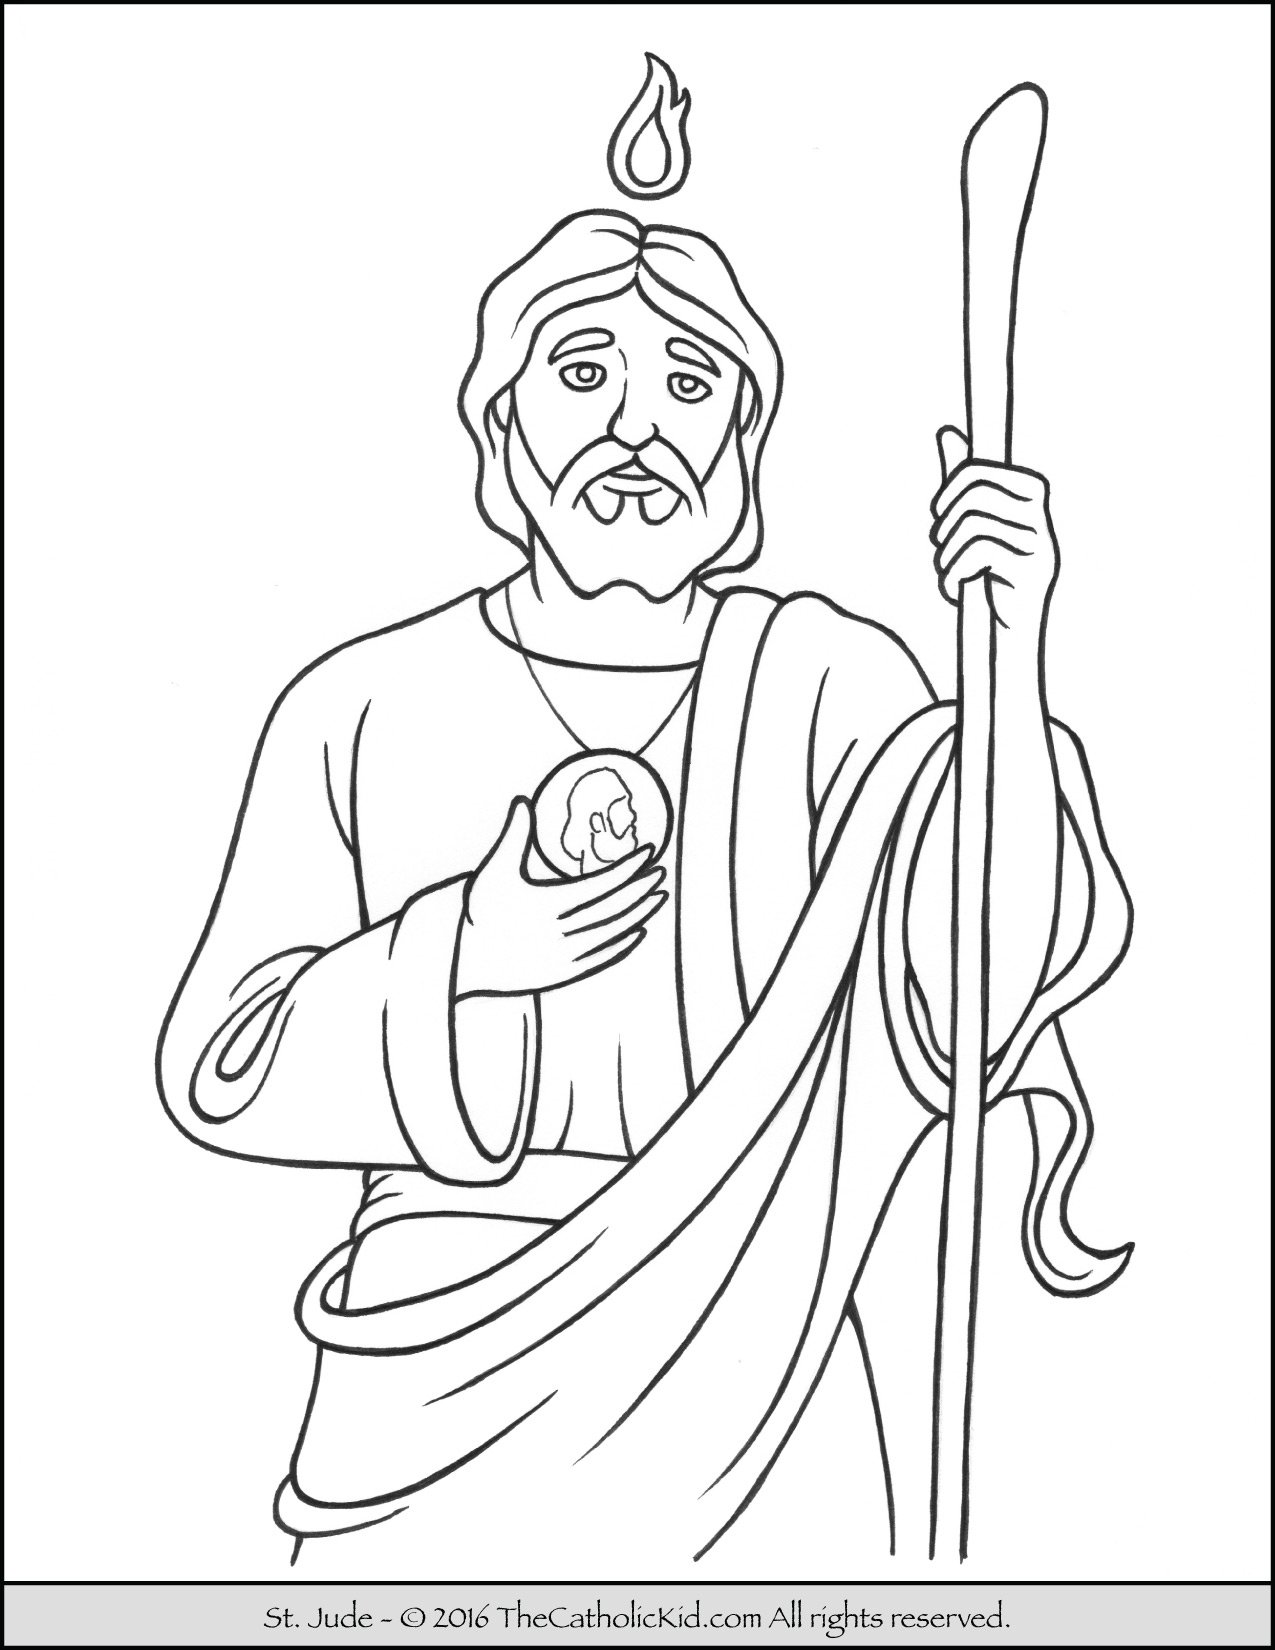 Saint Jude Coloring Page The Catholic Kid St Jude Coloring Page